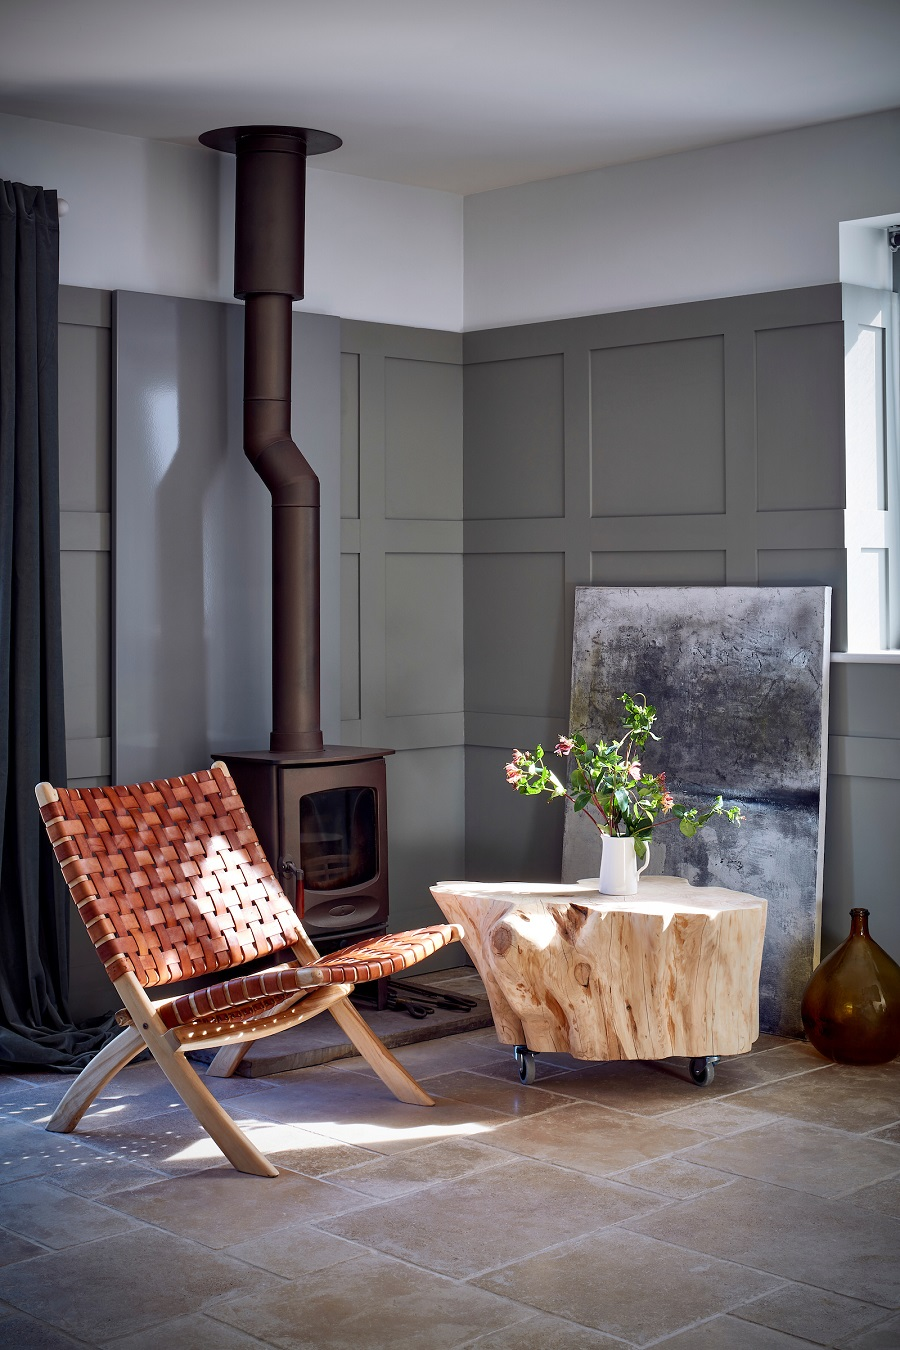 A New Range of Bespoke Freestanding Furniture With an Authentic Vintage Feel